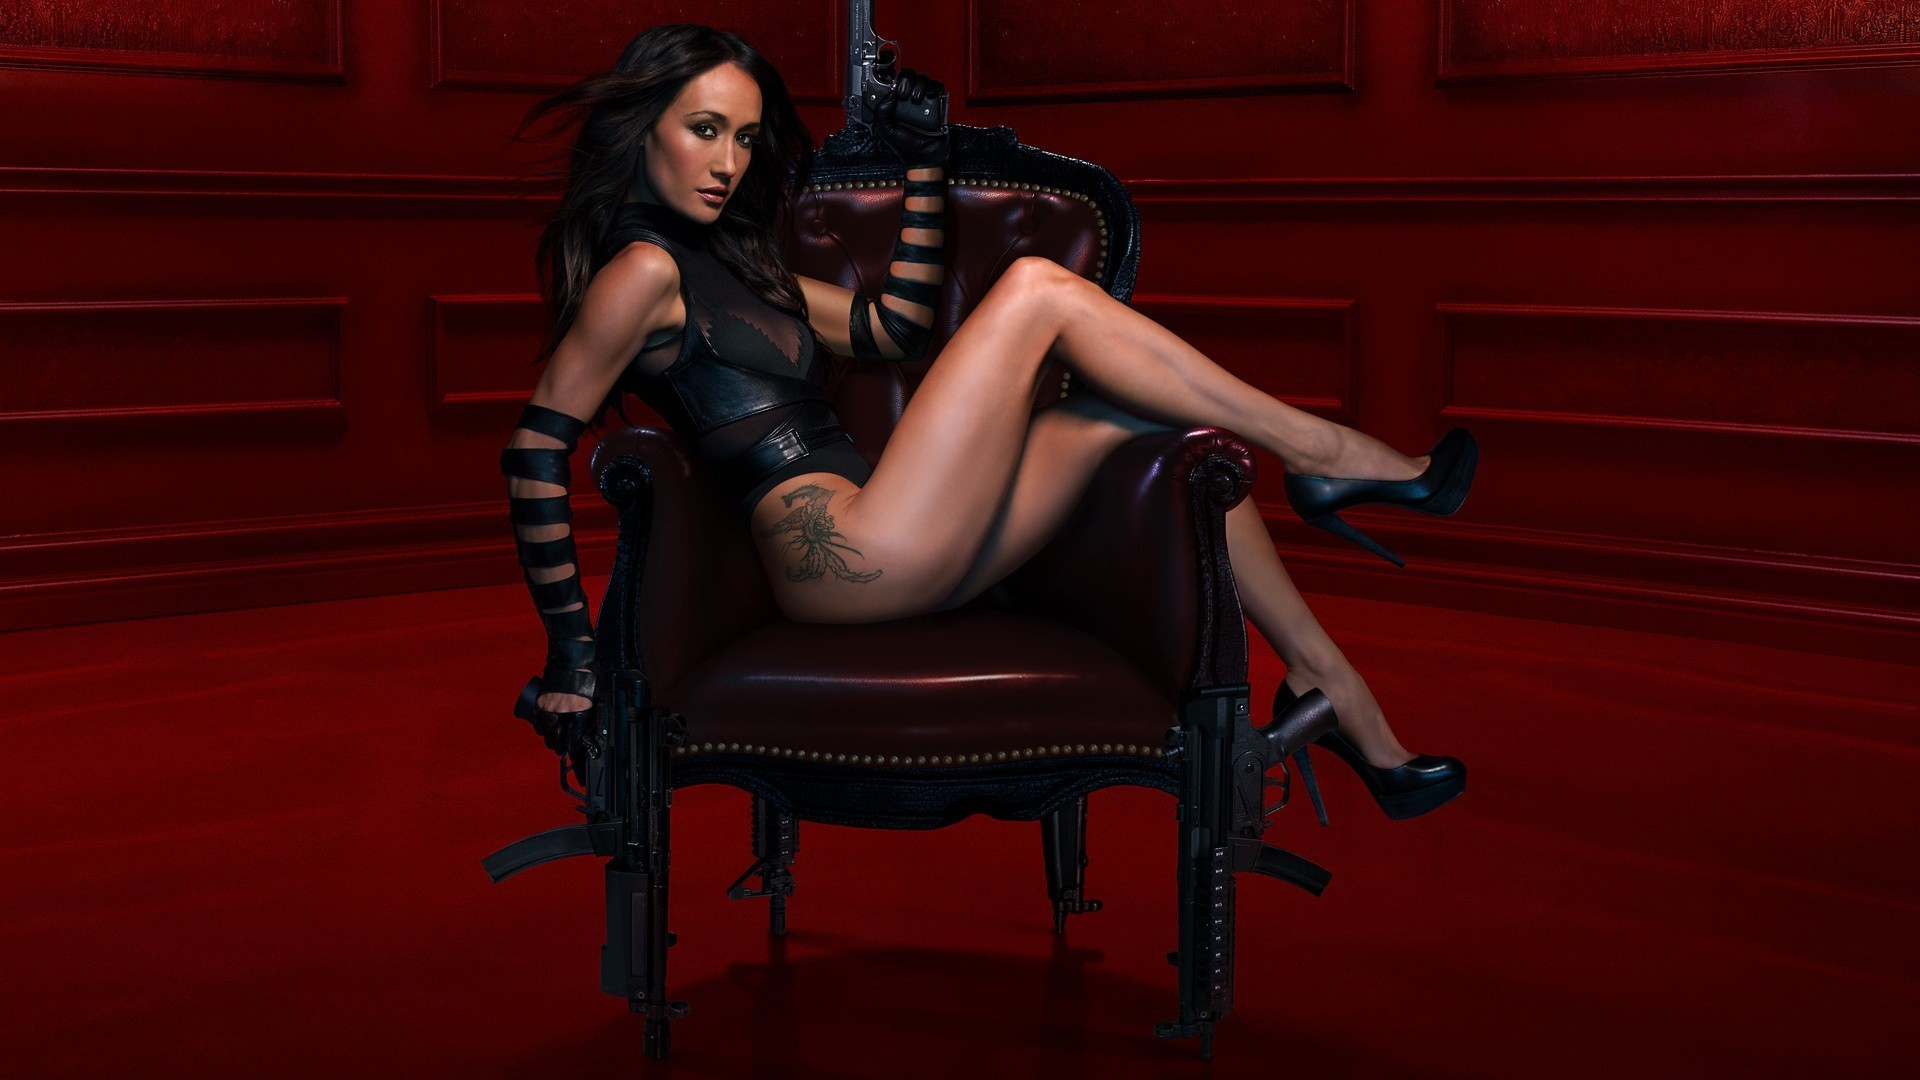 weapons and army sexy woman girl fashion model glamour one lingerie adult erotic portrait nude chair wear seat